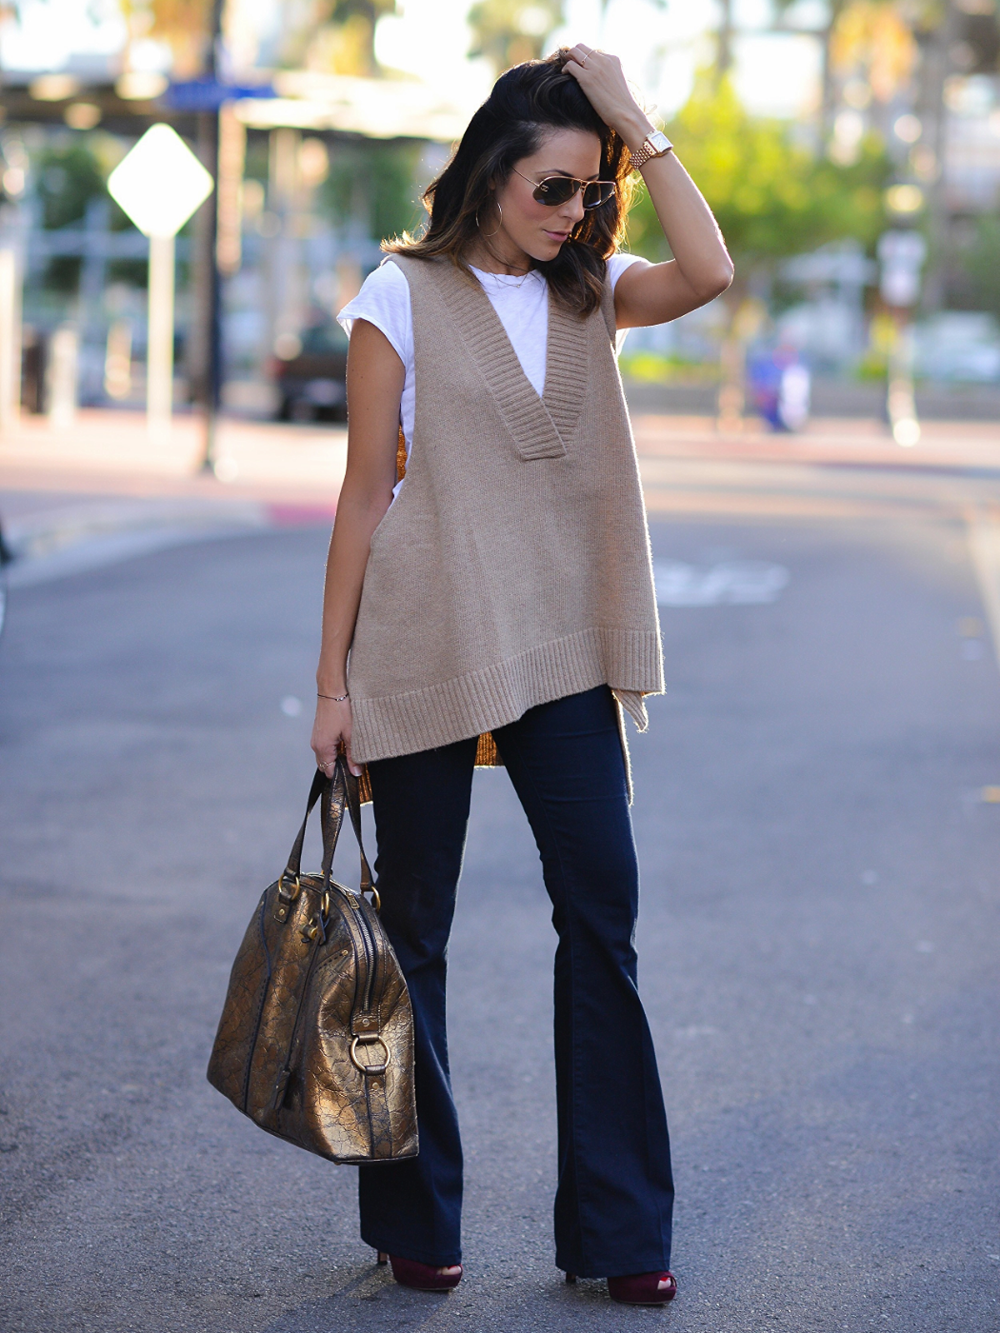 FreePeople_MIHJeans_Marrakesh_YSL_Muse_Prada_Fashion_Inspo_LucysWhims_SanDiego.jpg